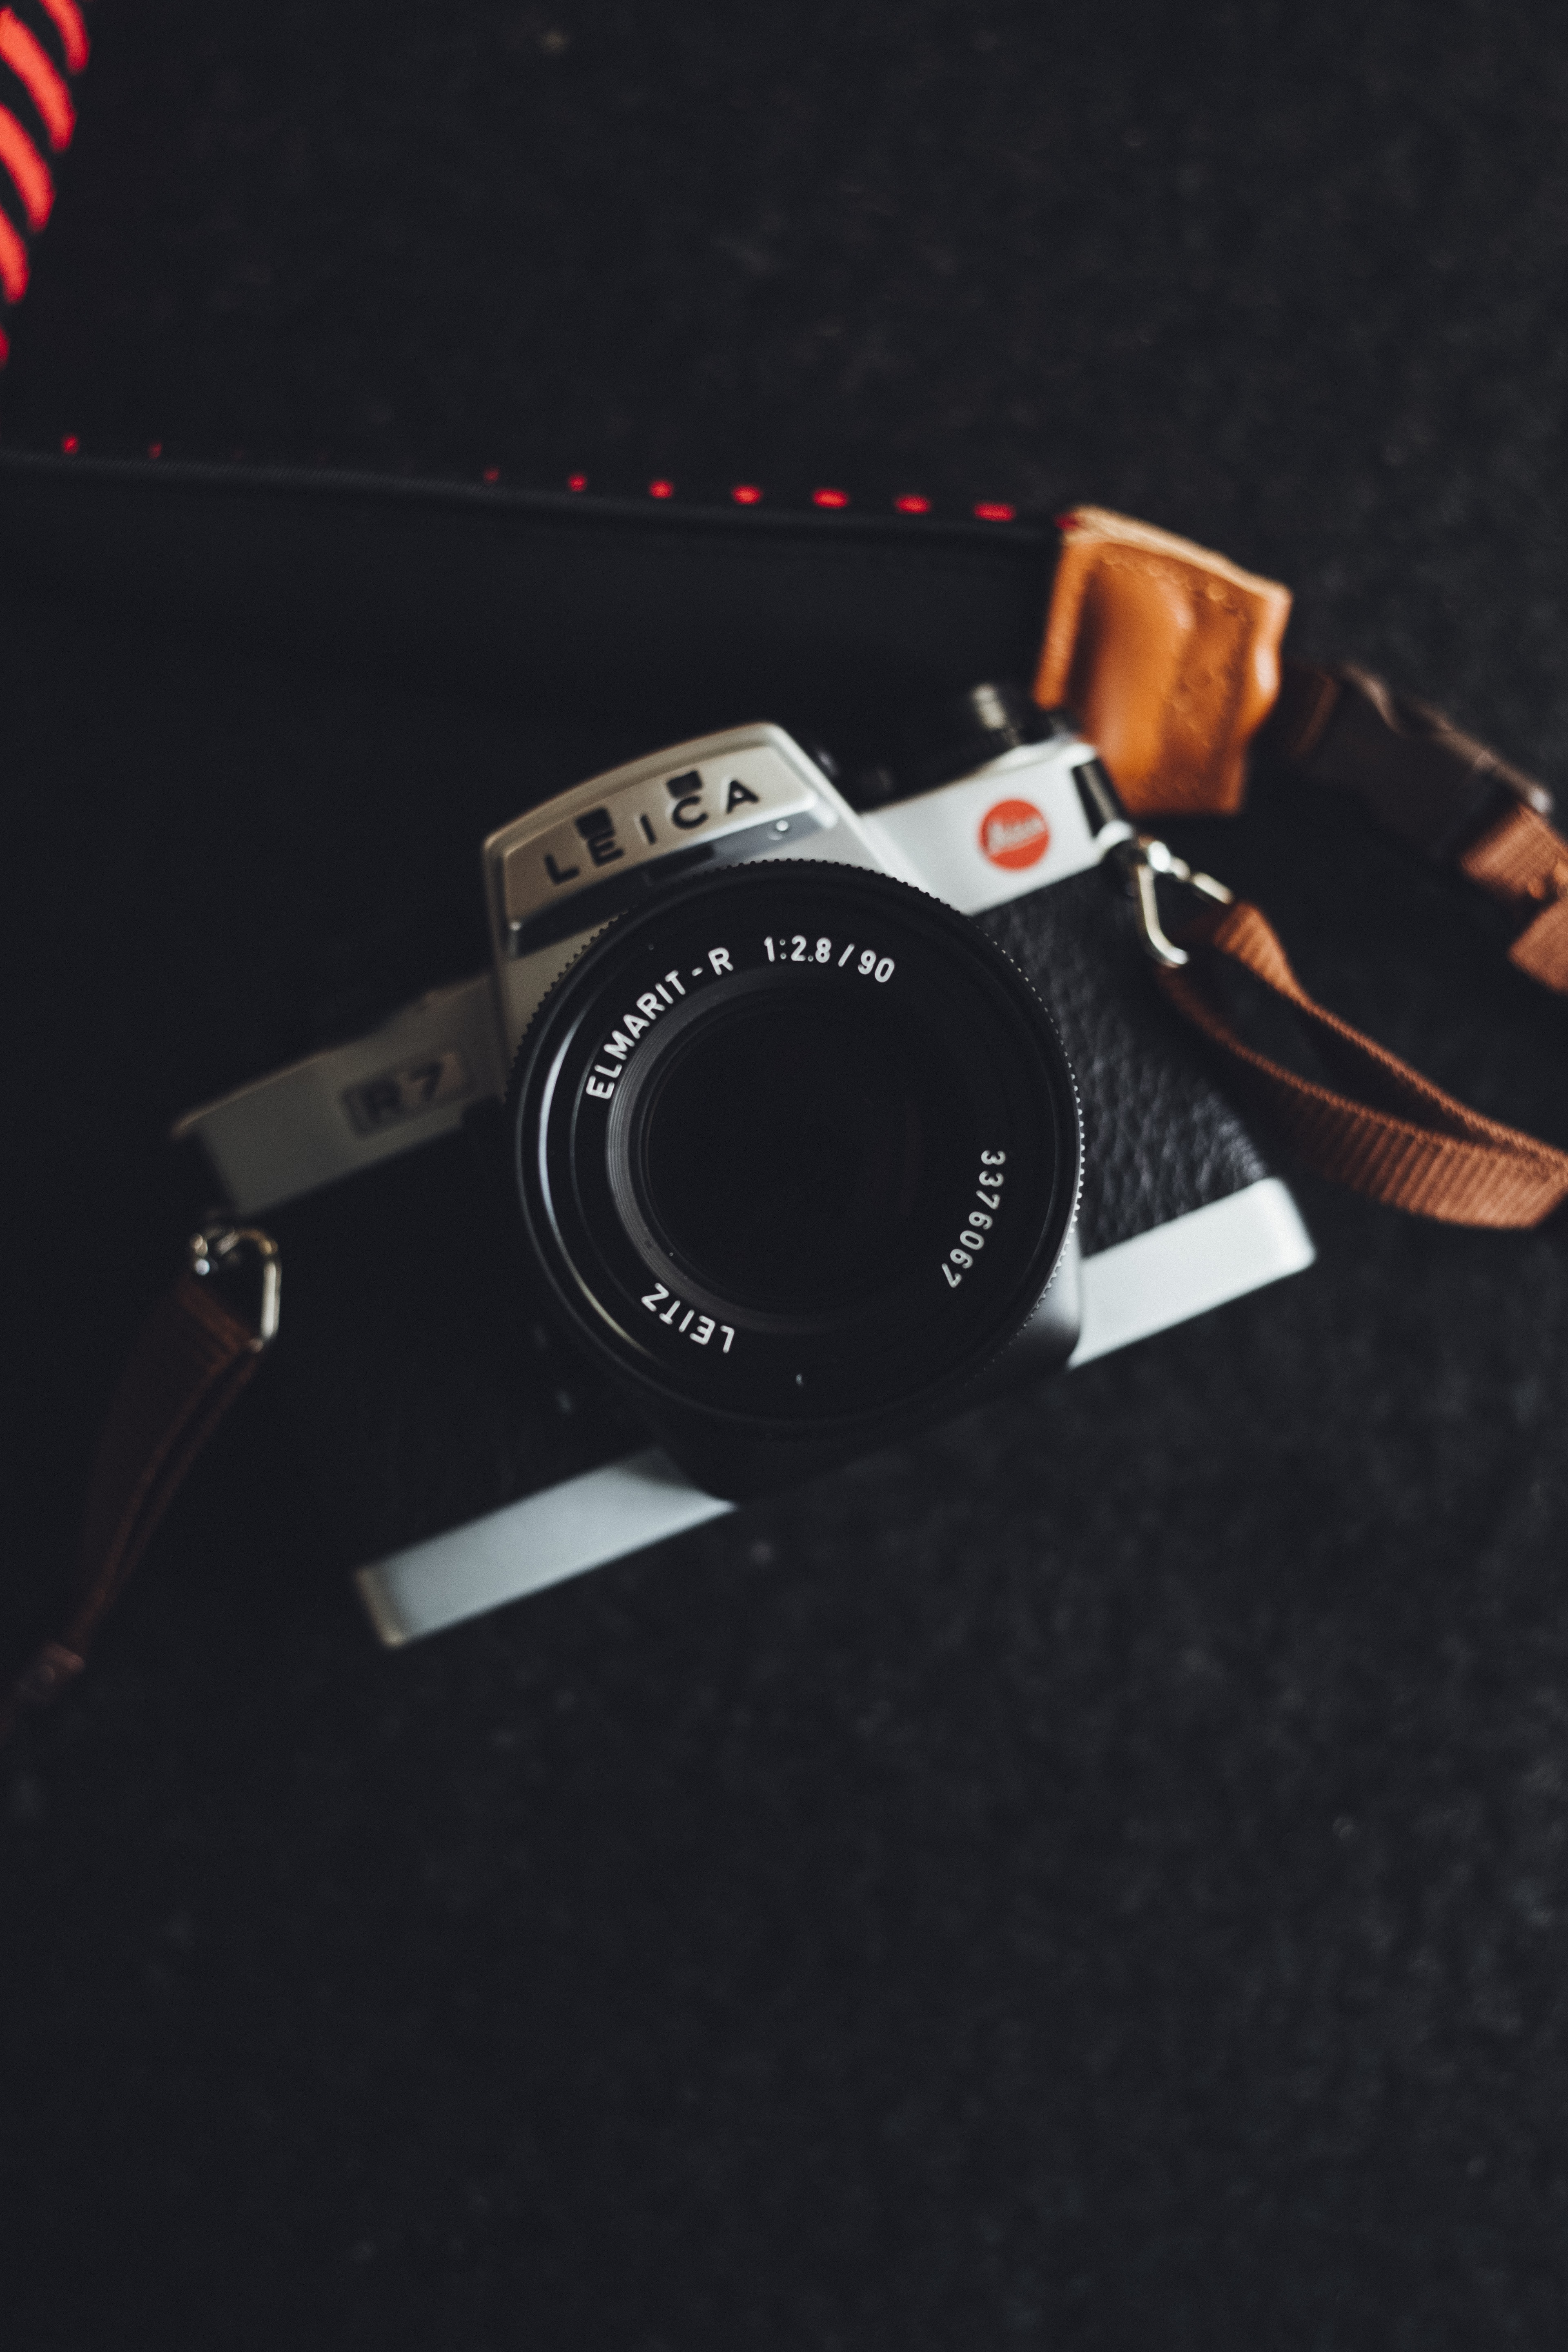 black and gray Leica bridge camera with brown sling on top of black textile